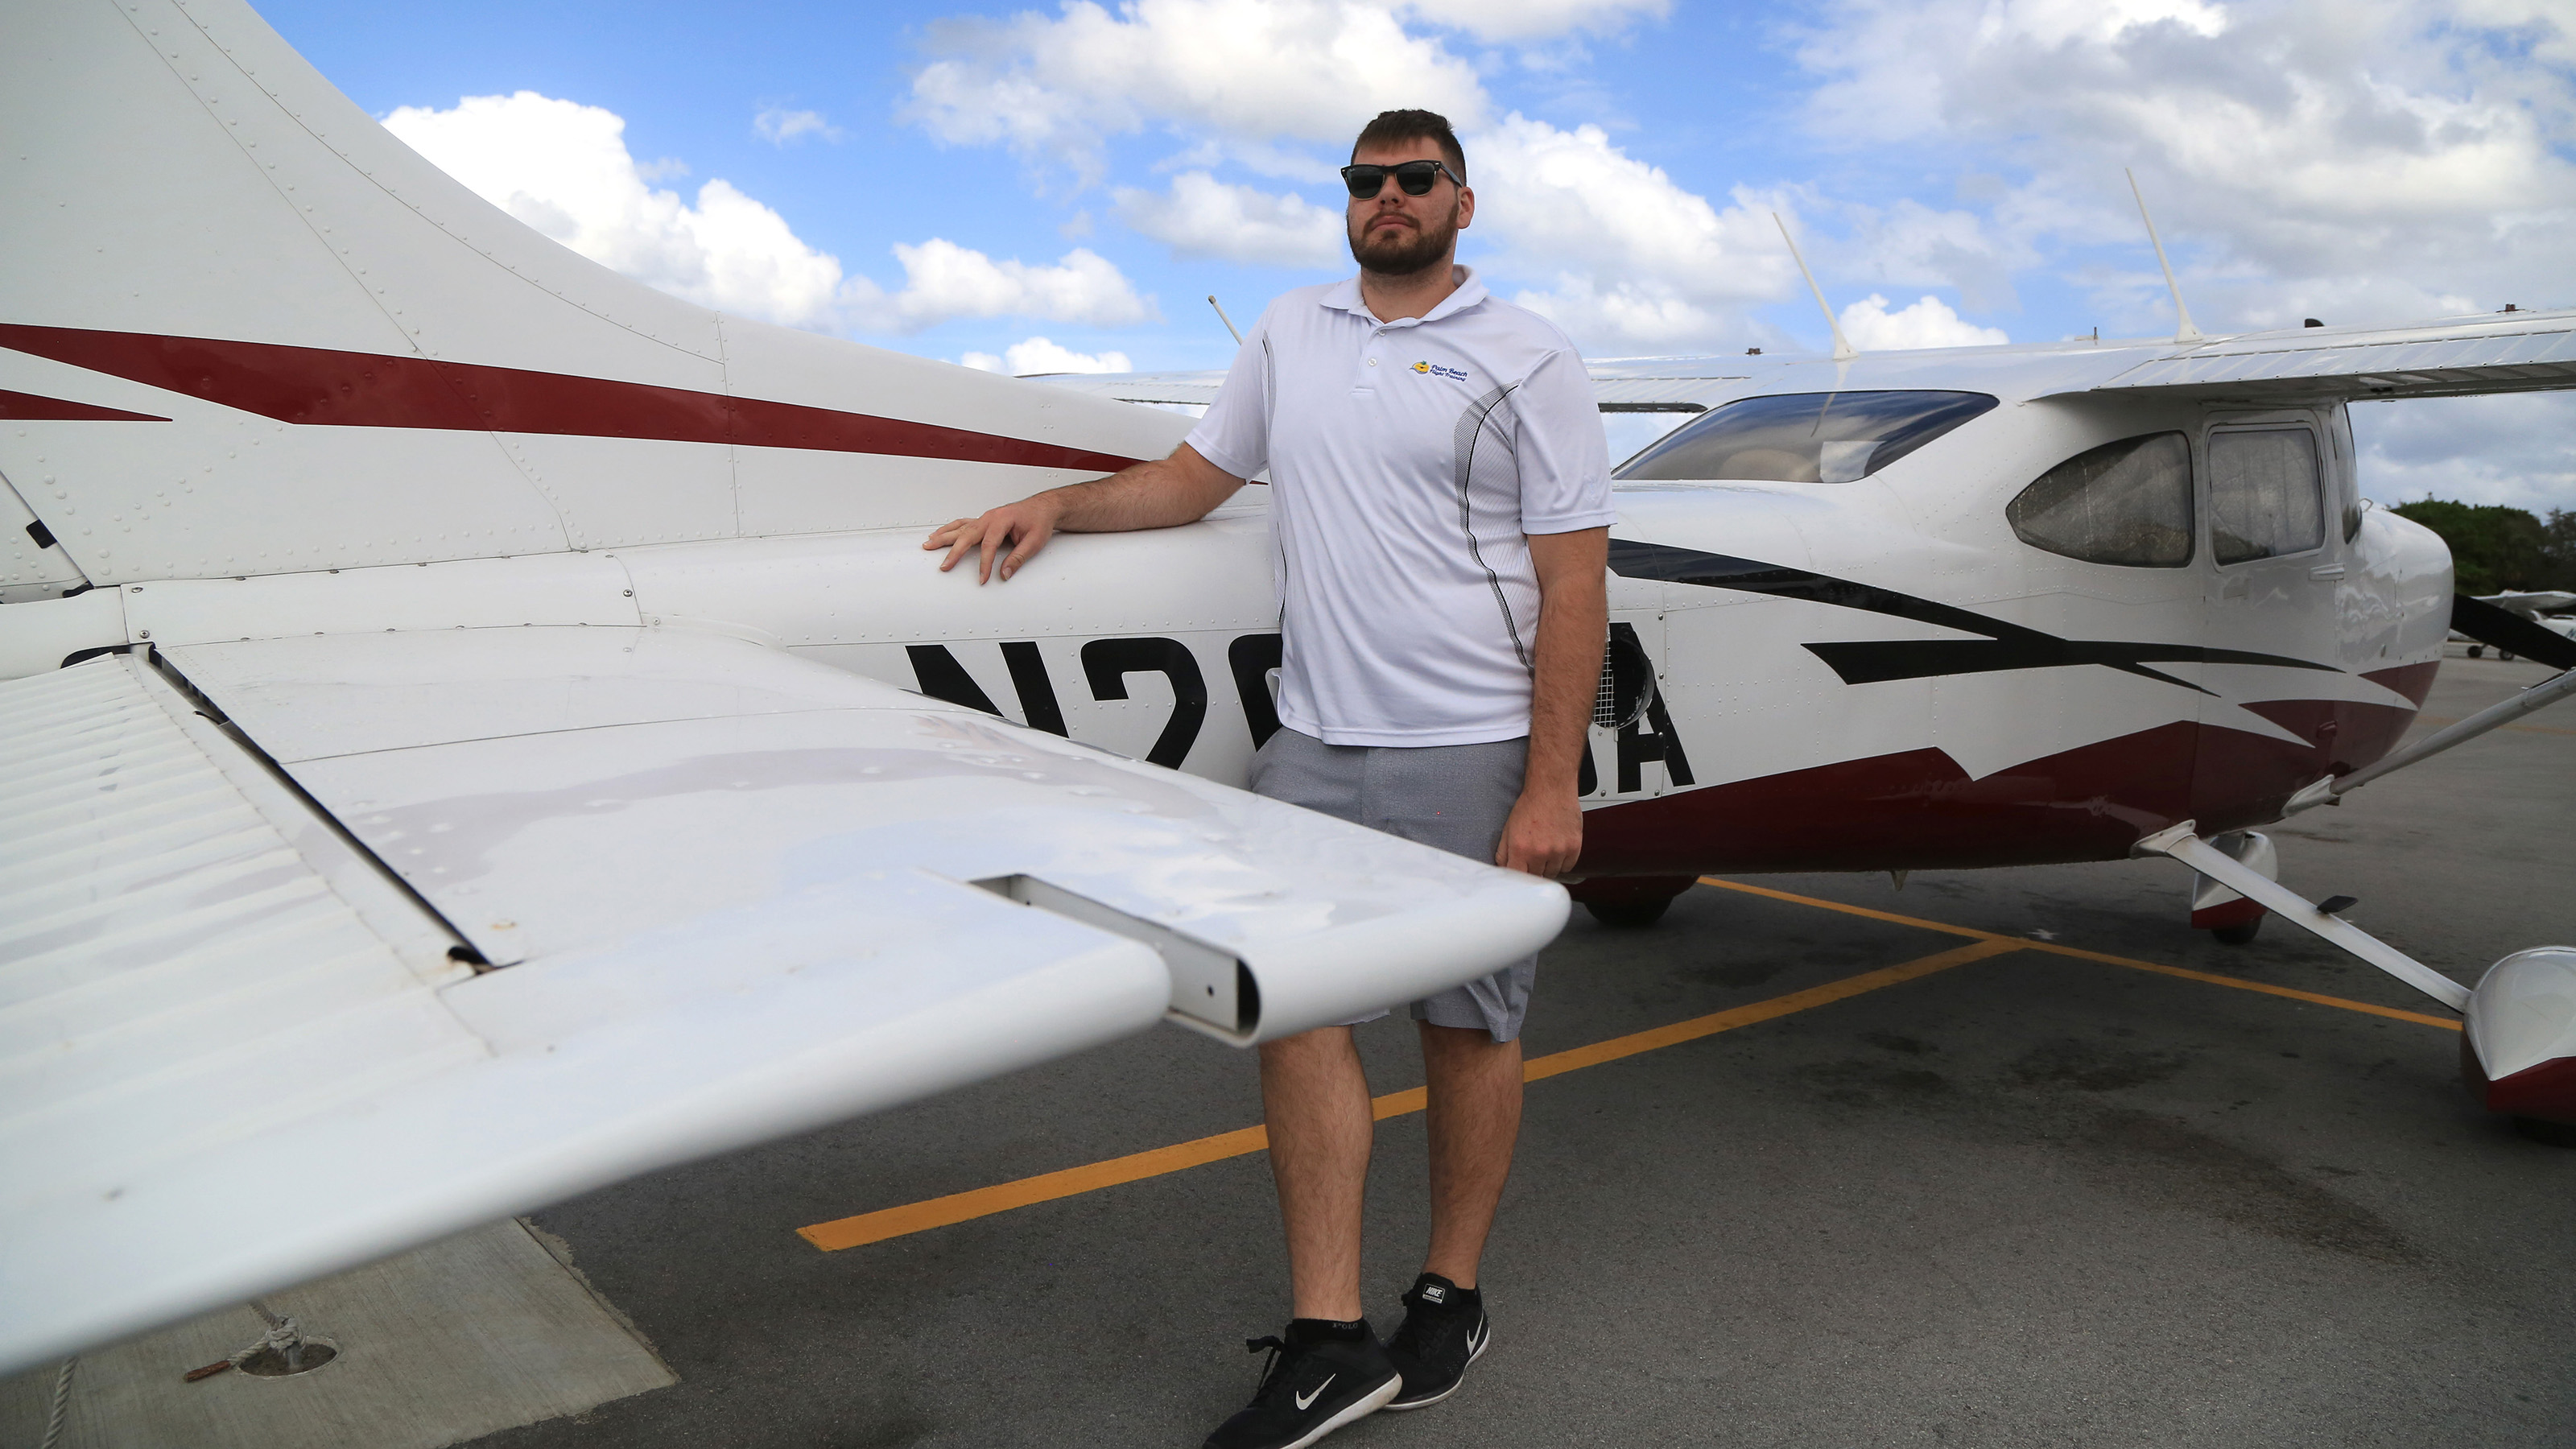 Richard Dragonette, a flight instructor at Palm Beach Flight Training school at Lantana Airport, says the school has  been impacted by the restrictions due to President Trump's Mar-a-Lago visits. Courtesy of Carline Jean, Fort Lauderdale Sun-Sentinel.